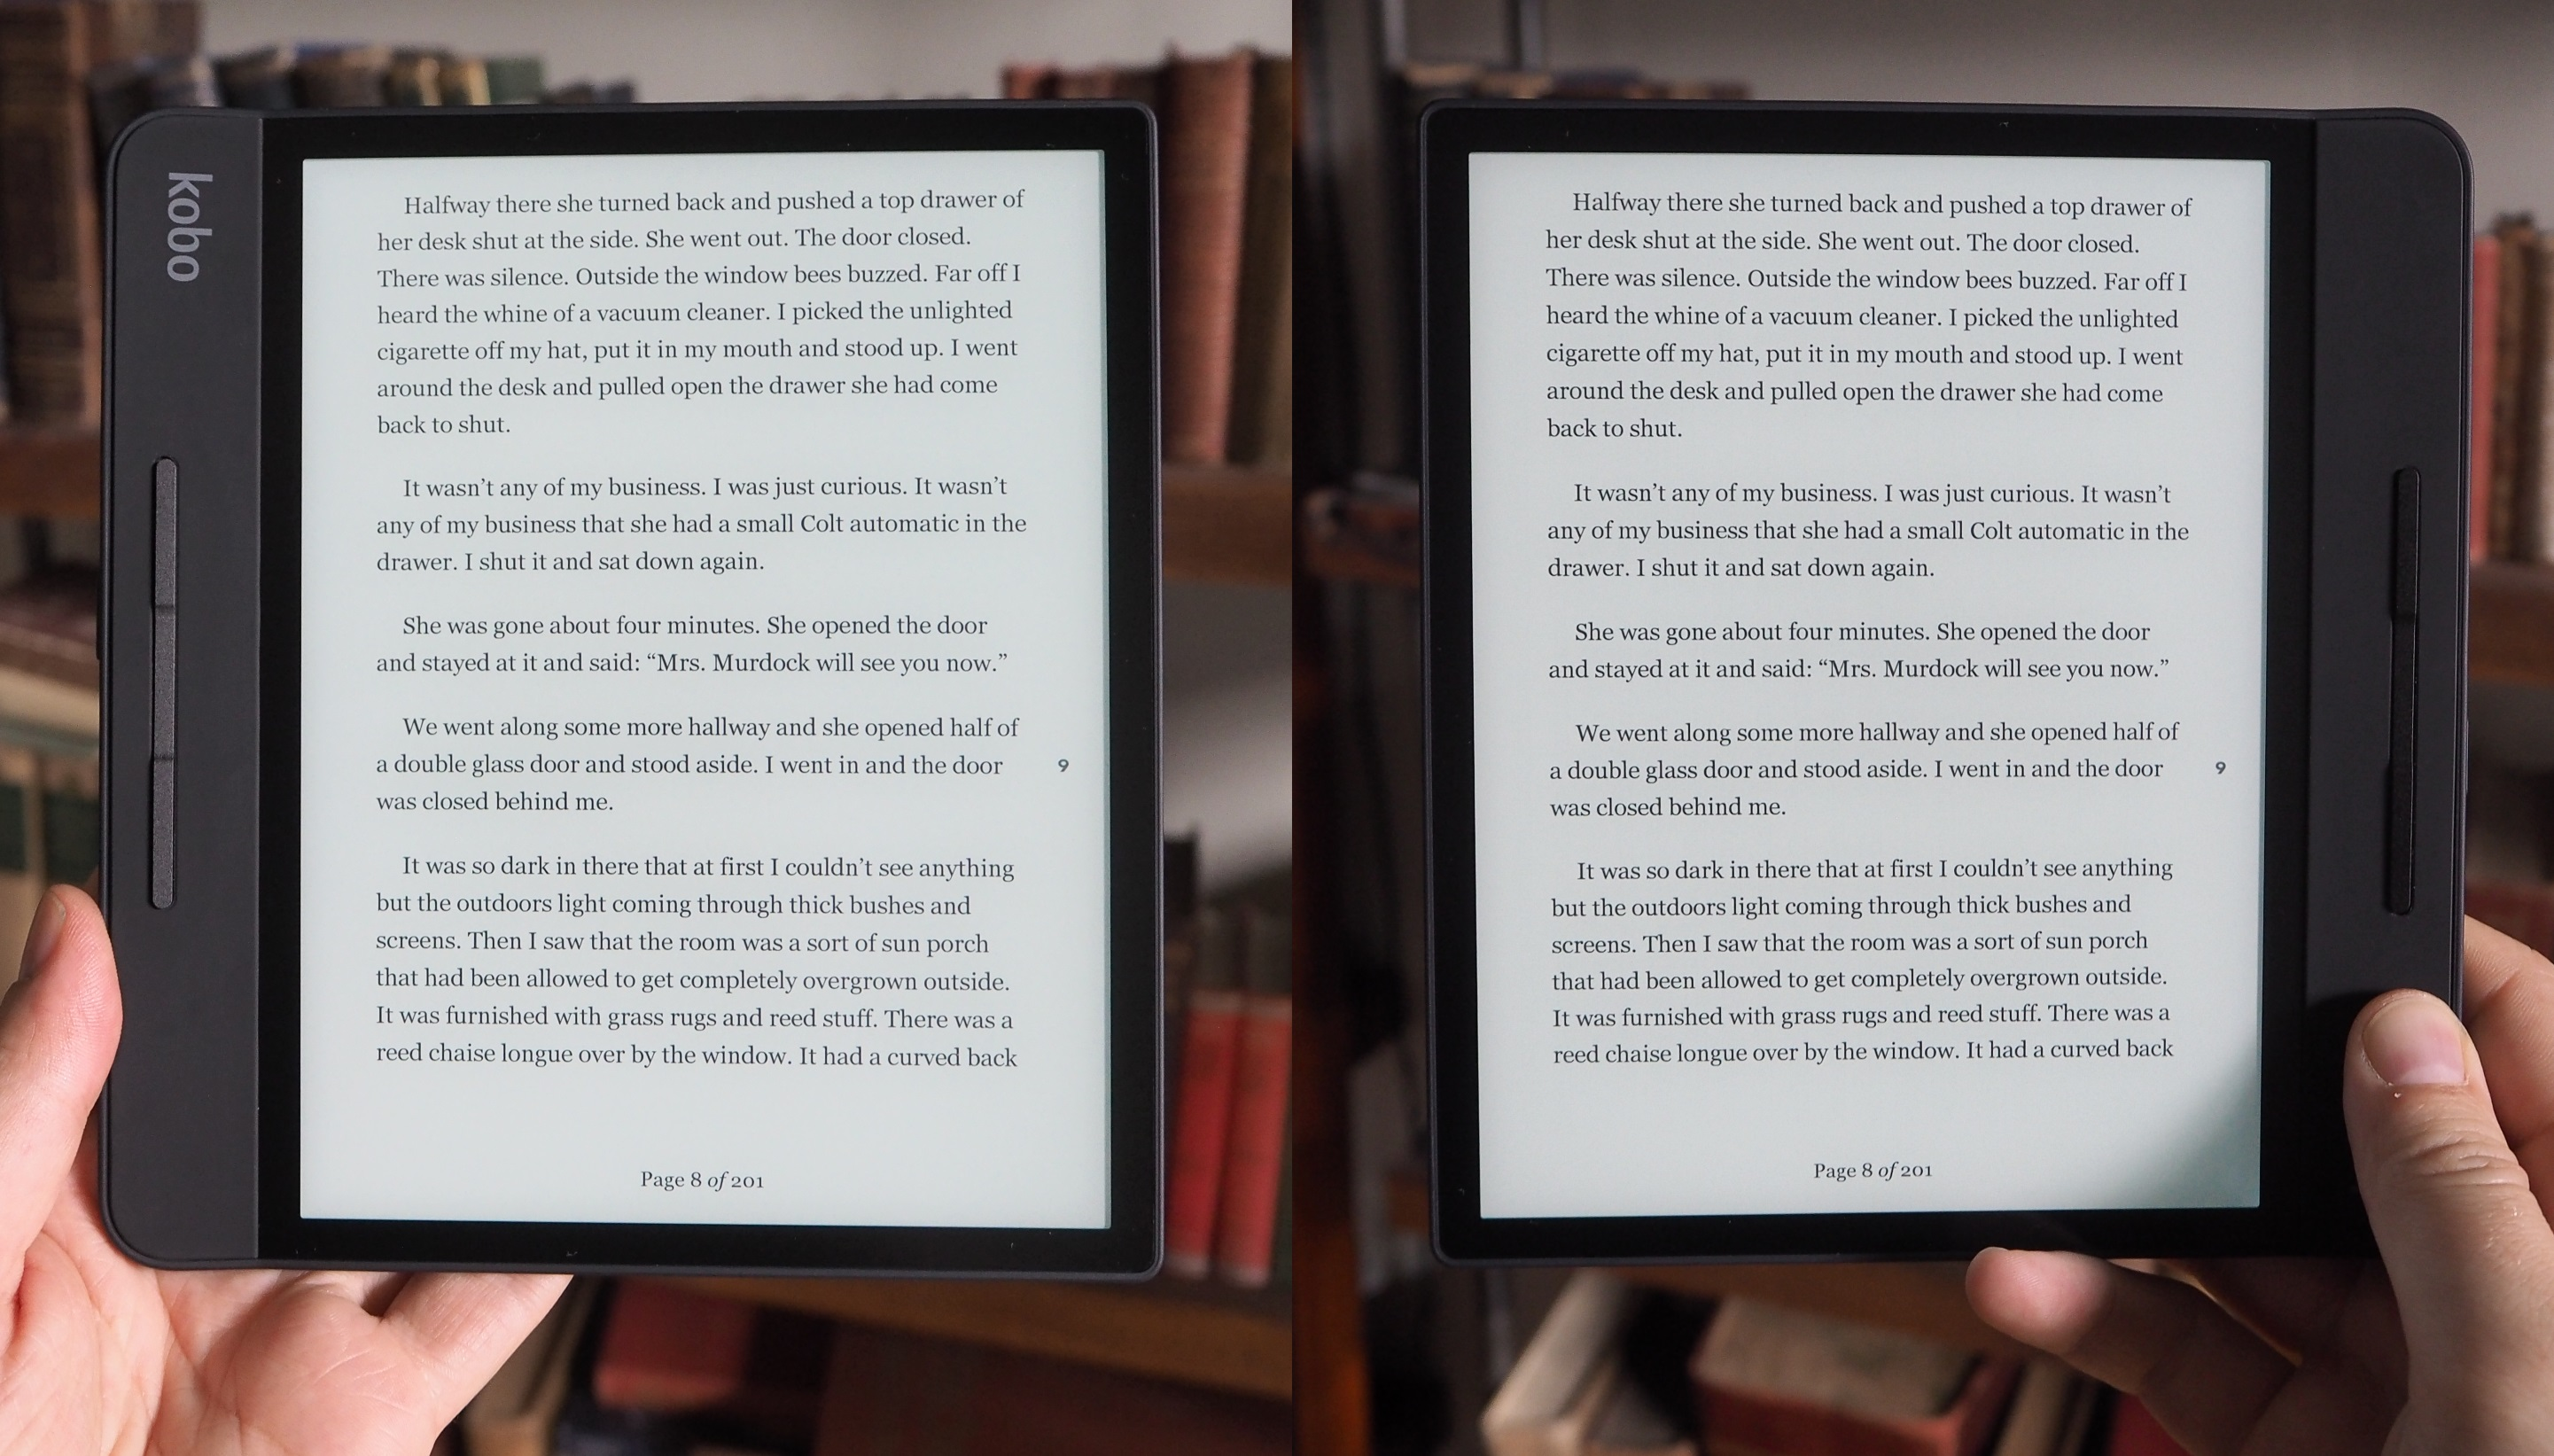 kobo s forma e reader takes on kindle oasis with an asymmetric